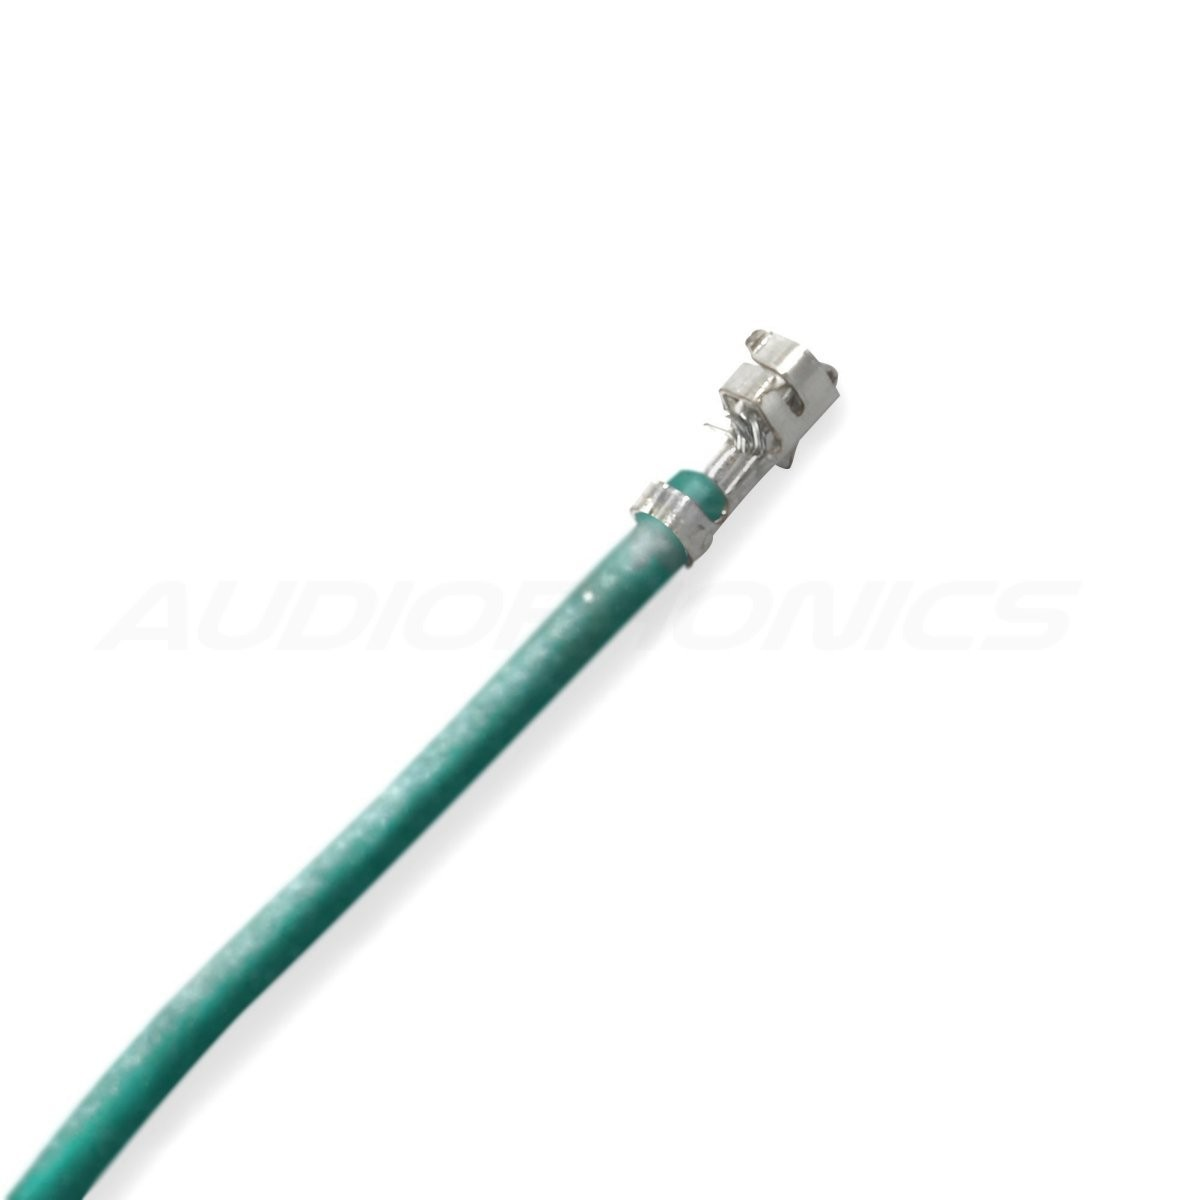 XH 2.54mm Female / Female Cable 1 Poles No Casing Green 15cm (x10)